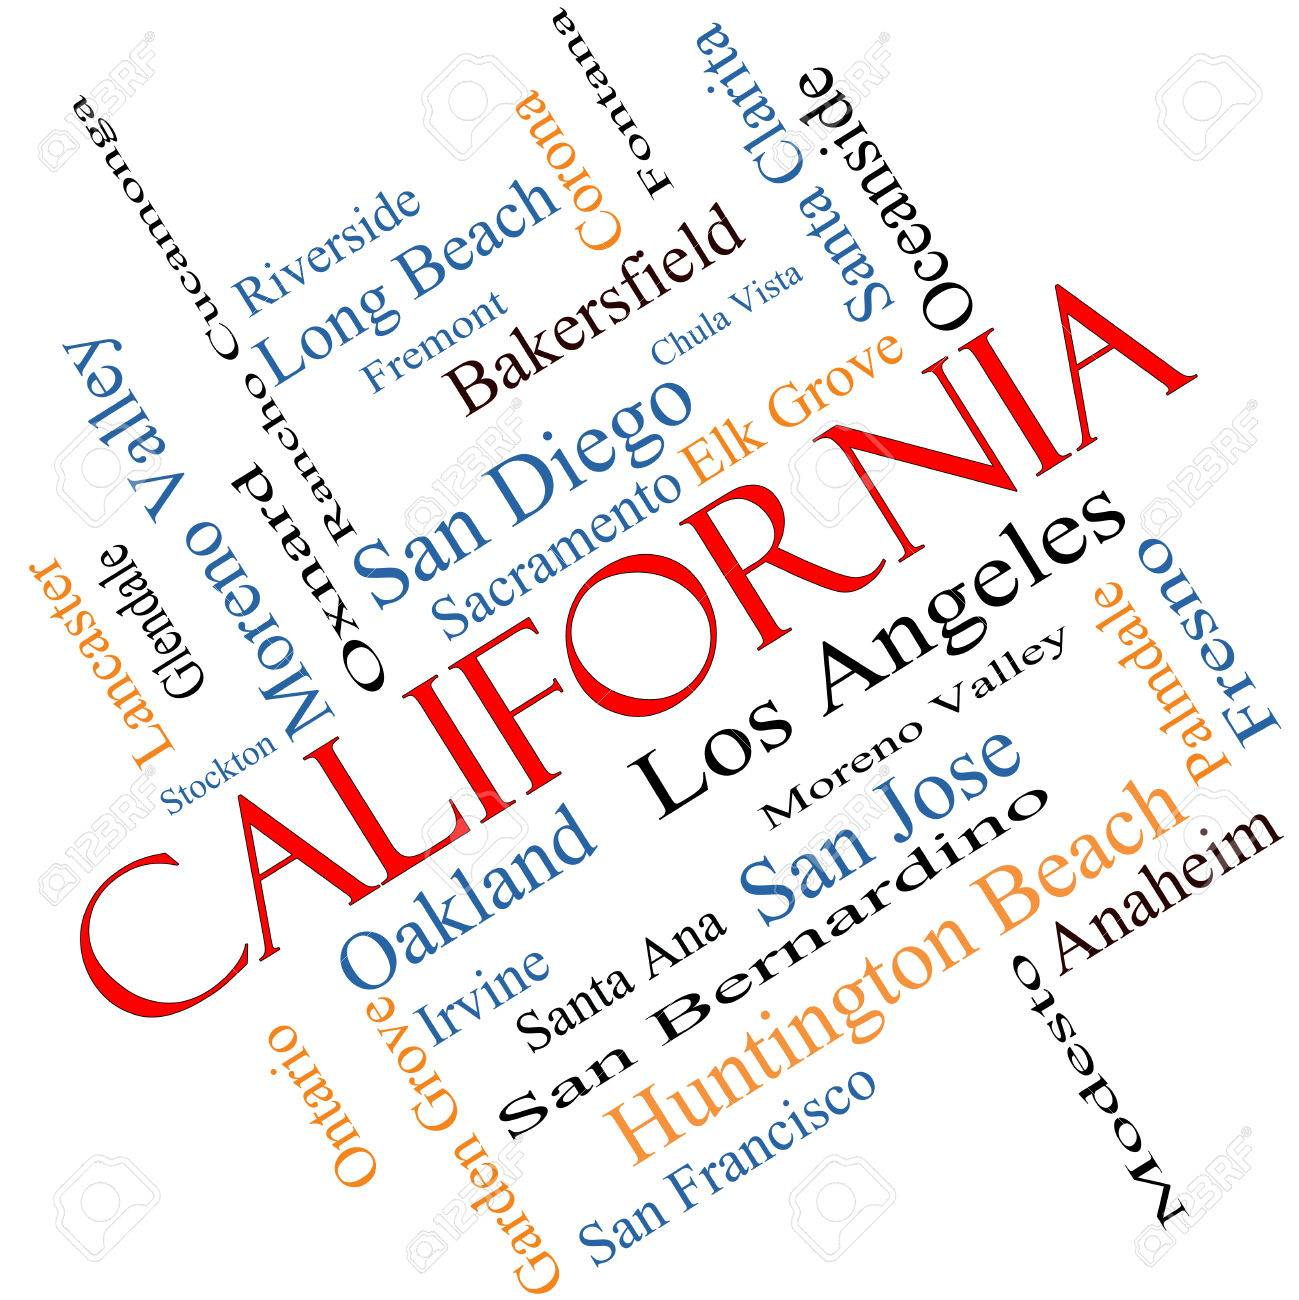 Th the largest city in california - California State Word Cloud Concept Angled With About The 30 Largest Cities In The State Such